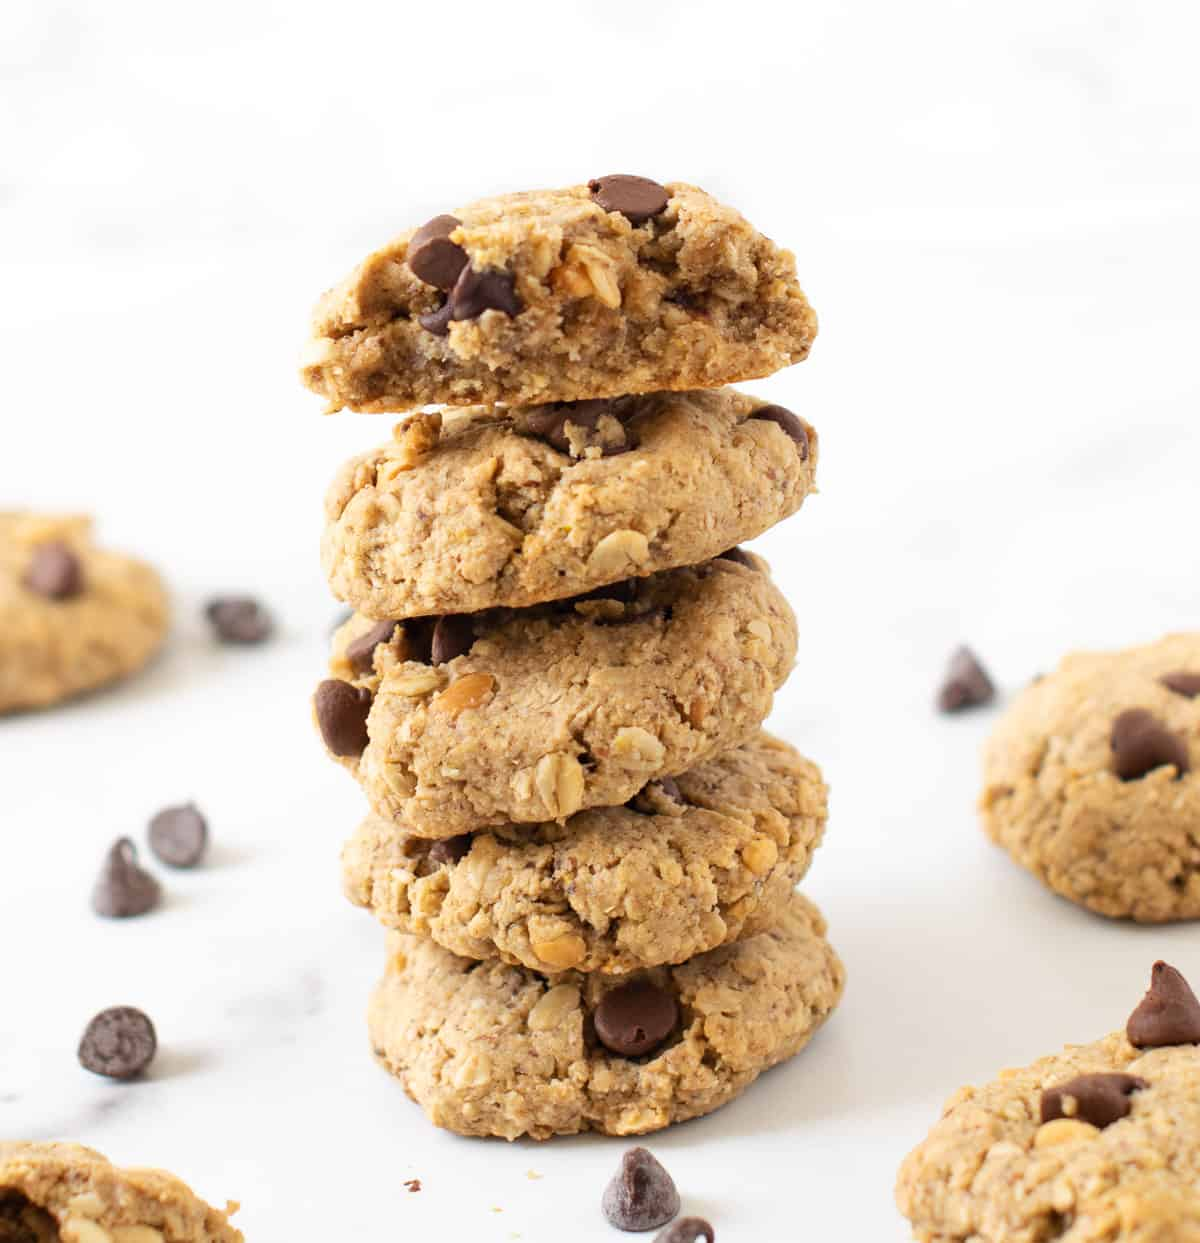 Peanut buttter oatmeal chocolate chip cookies stacked up